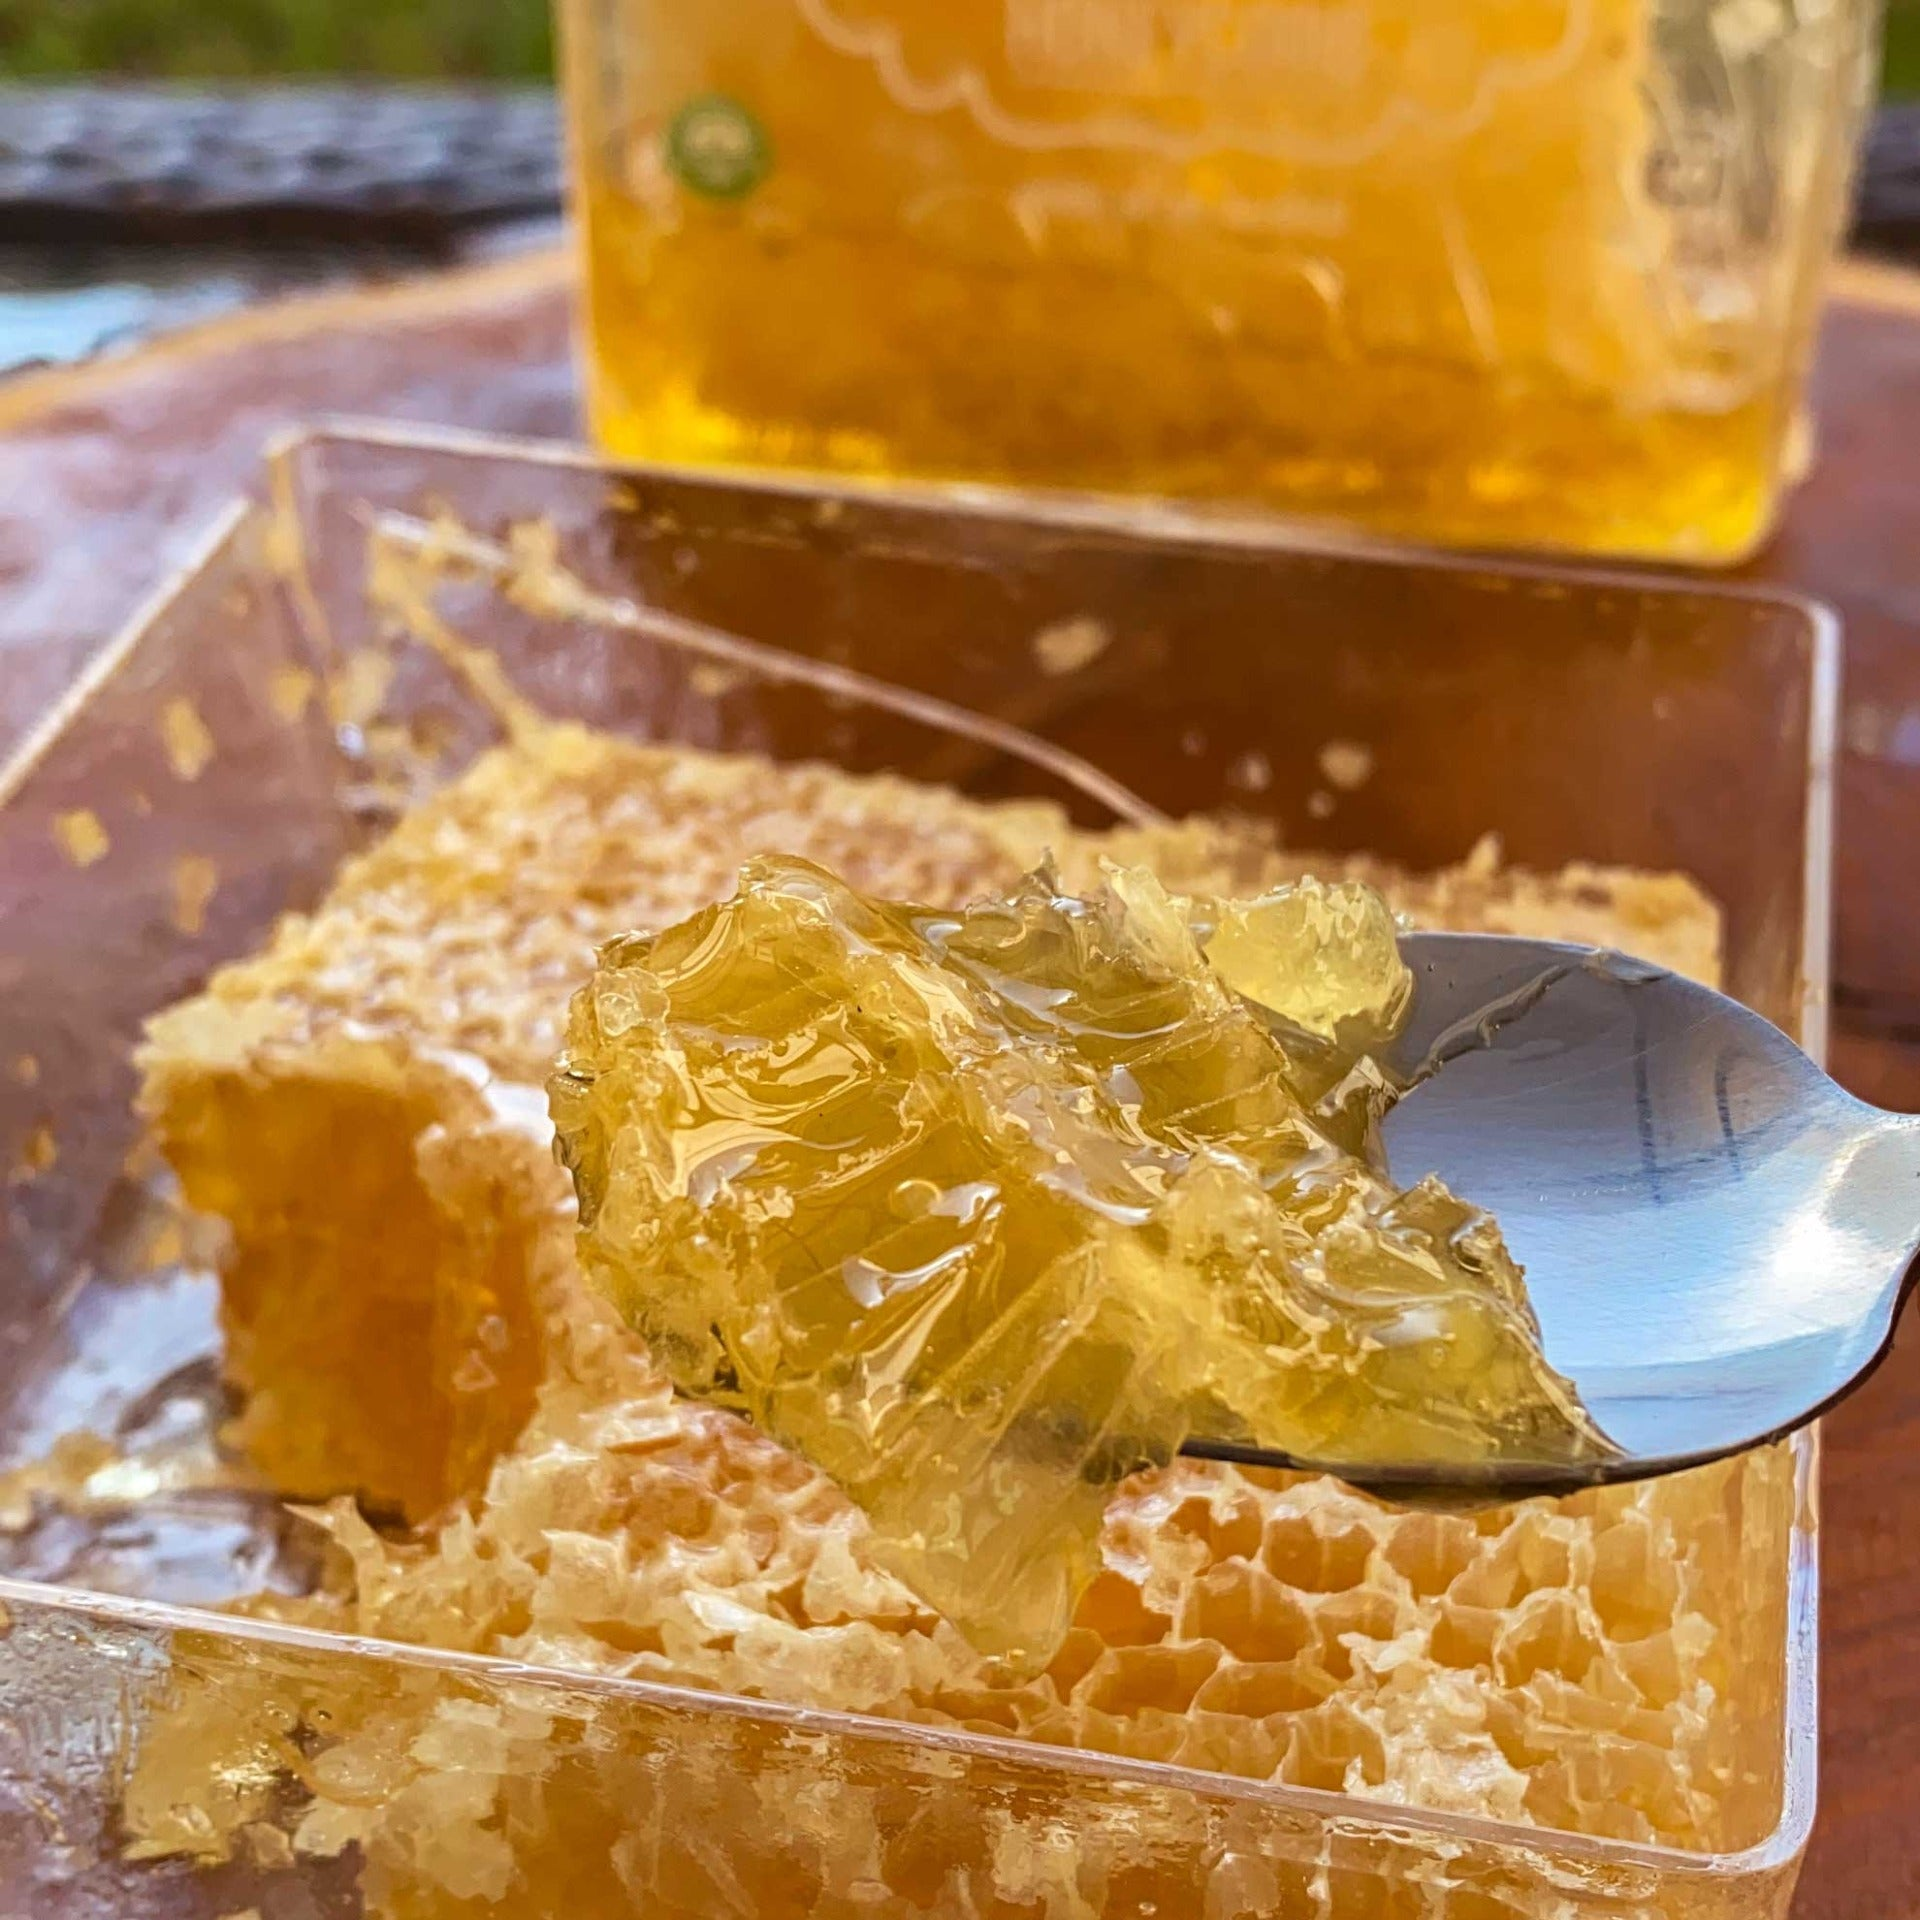 Image of the open USA Honeycomb box, with a spoon showing a cut piece of the honeycomb.